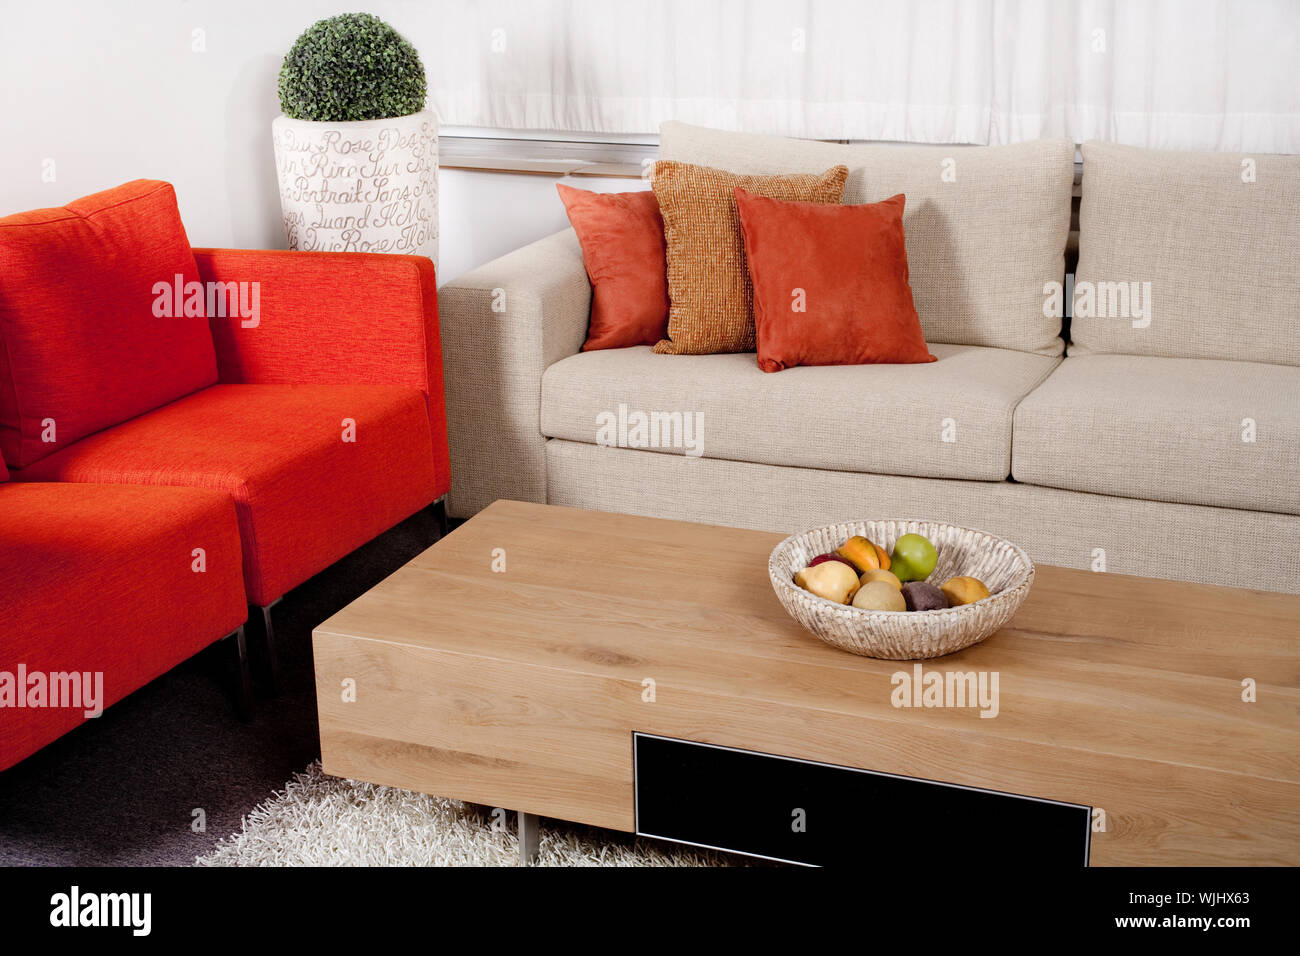 Modern Furniture Design With Couches In Two Colors In Living